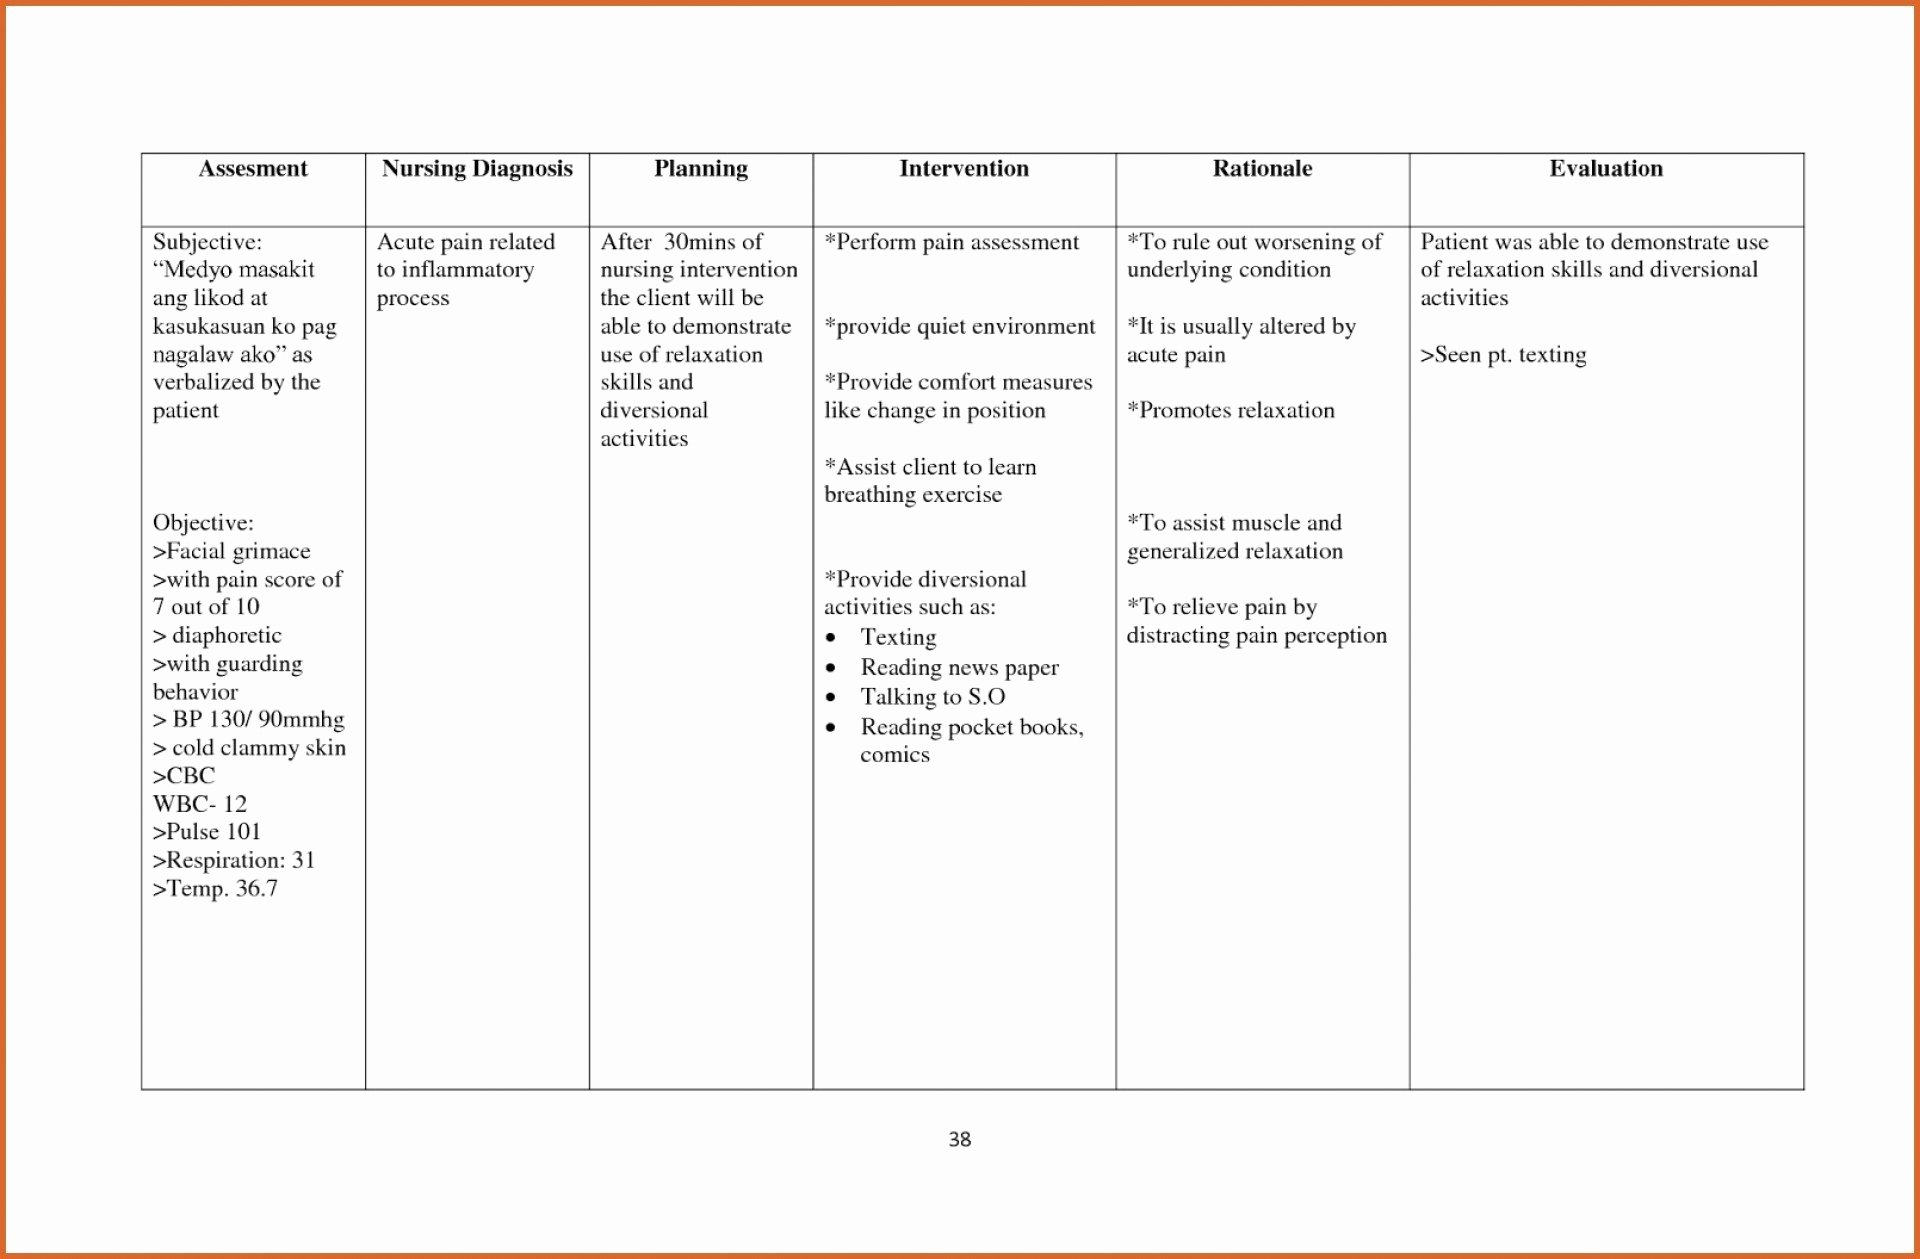 Home Health Care Plan Template New 005 Nursing Care Plans Examples Plan Tinypetition